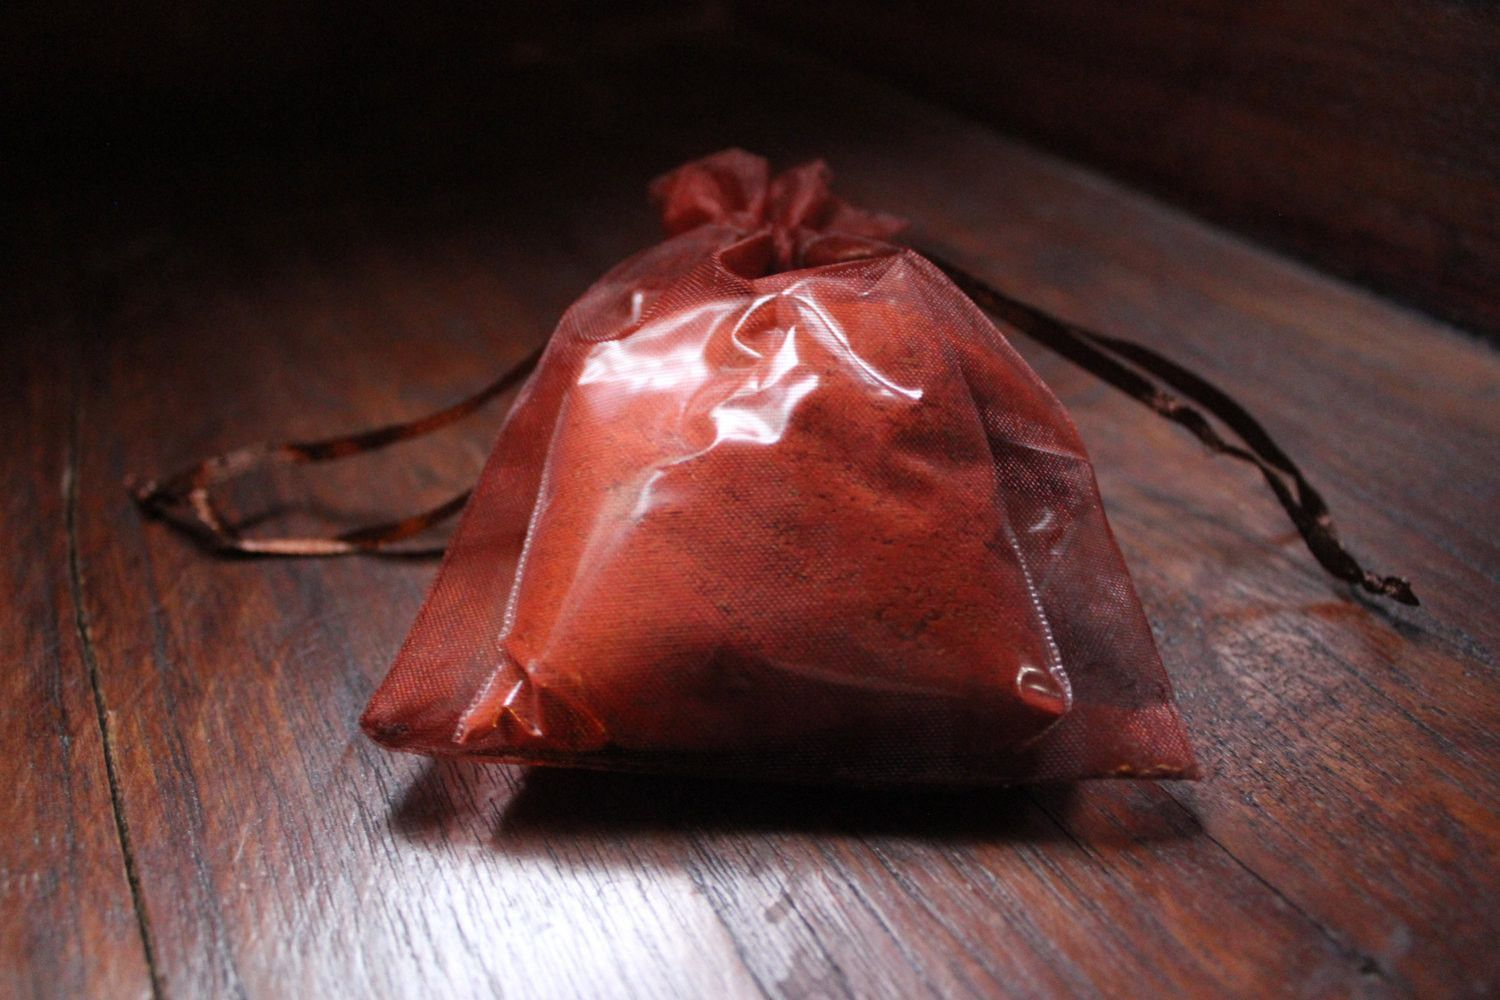 House Blend of Red Sandalwood Powder and Eastern Red Cedar